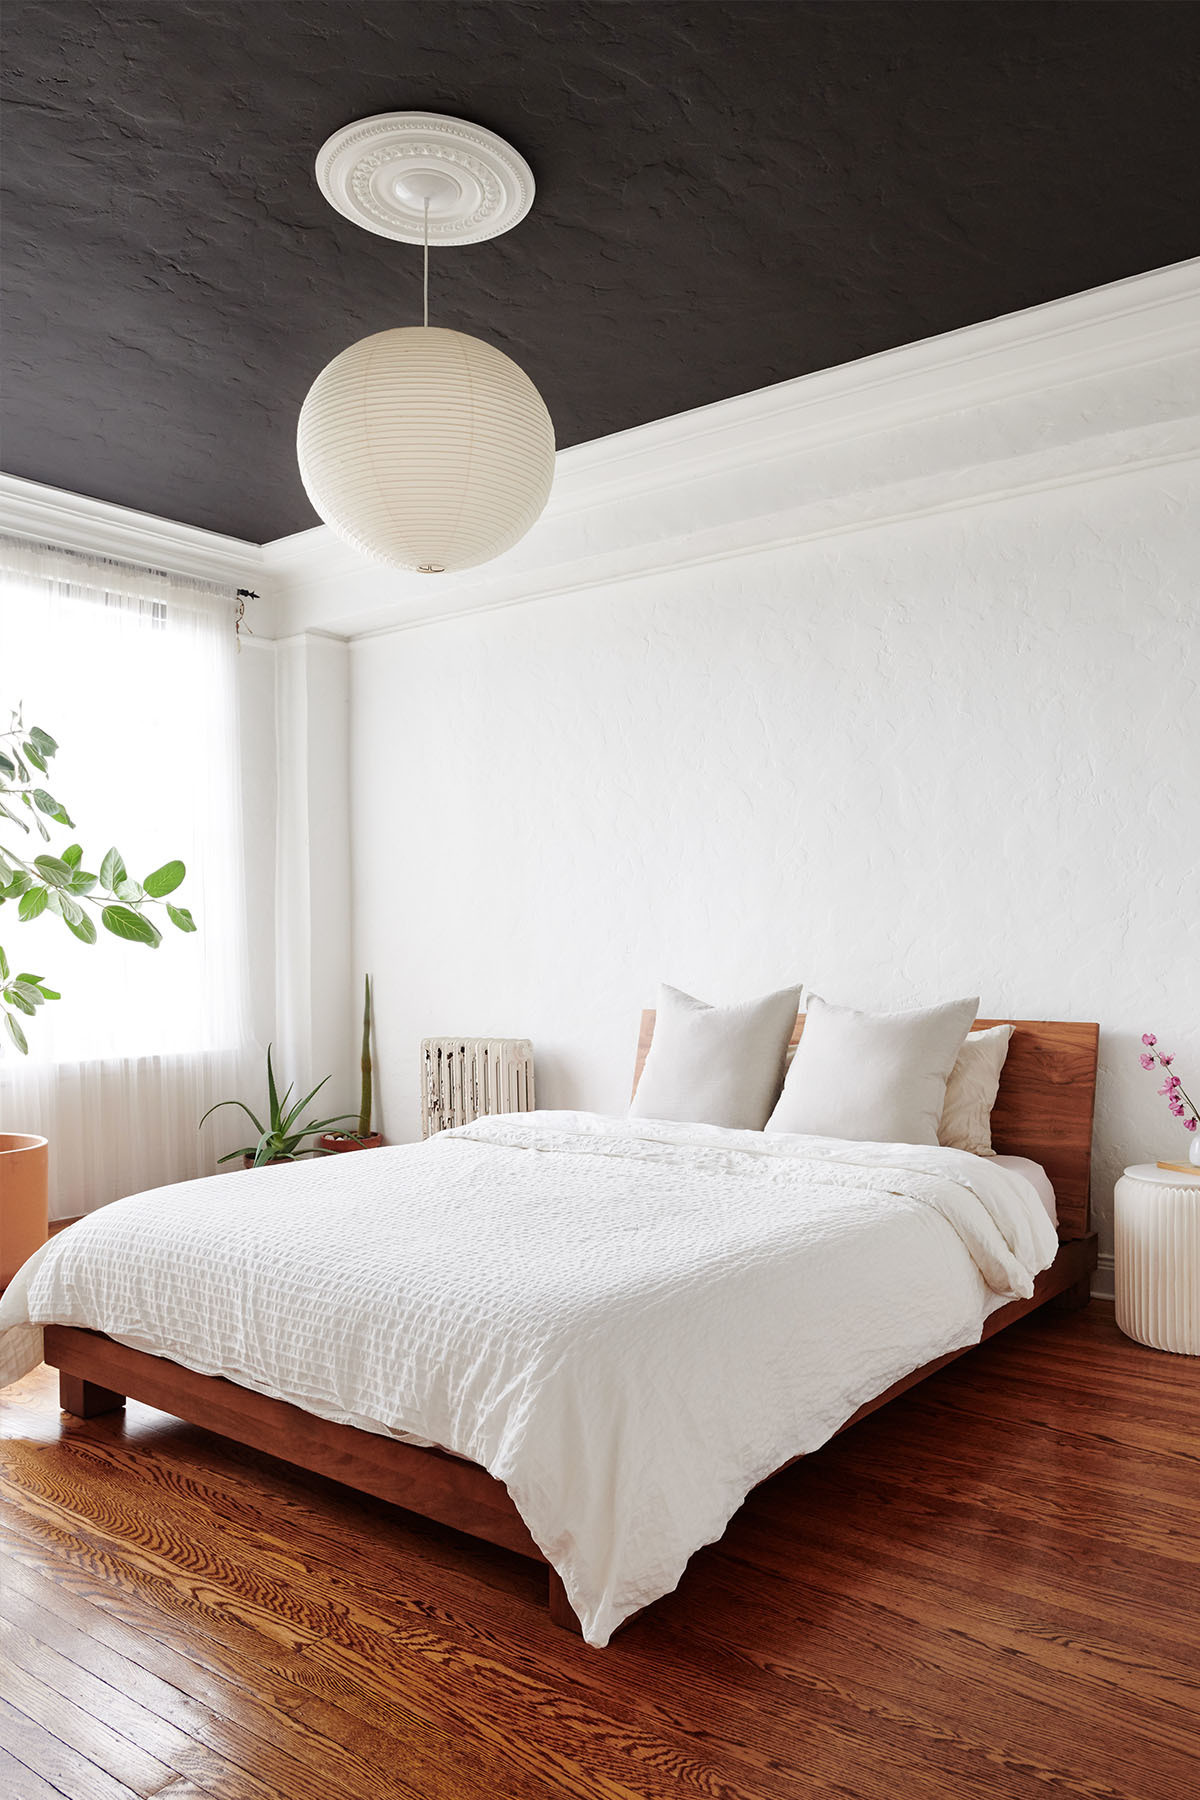 The couple opt for a dark gray ceiling — reminiscent of the night sky — to bring a point of difference to the calming and serene master bedroom space. Benjamin Moore Paint | IKEA Drapes | Millwork Ceiling Medallion | Akari Noguchi Pendant Light | CB2 Bed | IKEA Duvet Cover | Hawkins New York Bedding | Flora Grubb Planters | Amazon Side Table | Heath Ceramics Bud Vase.